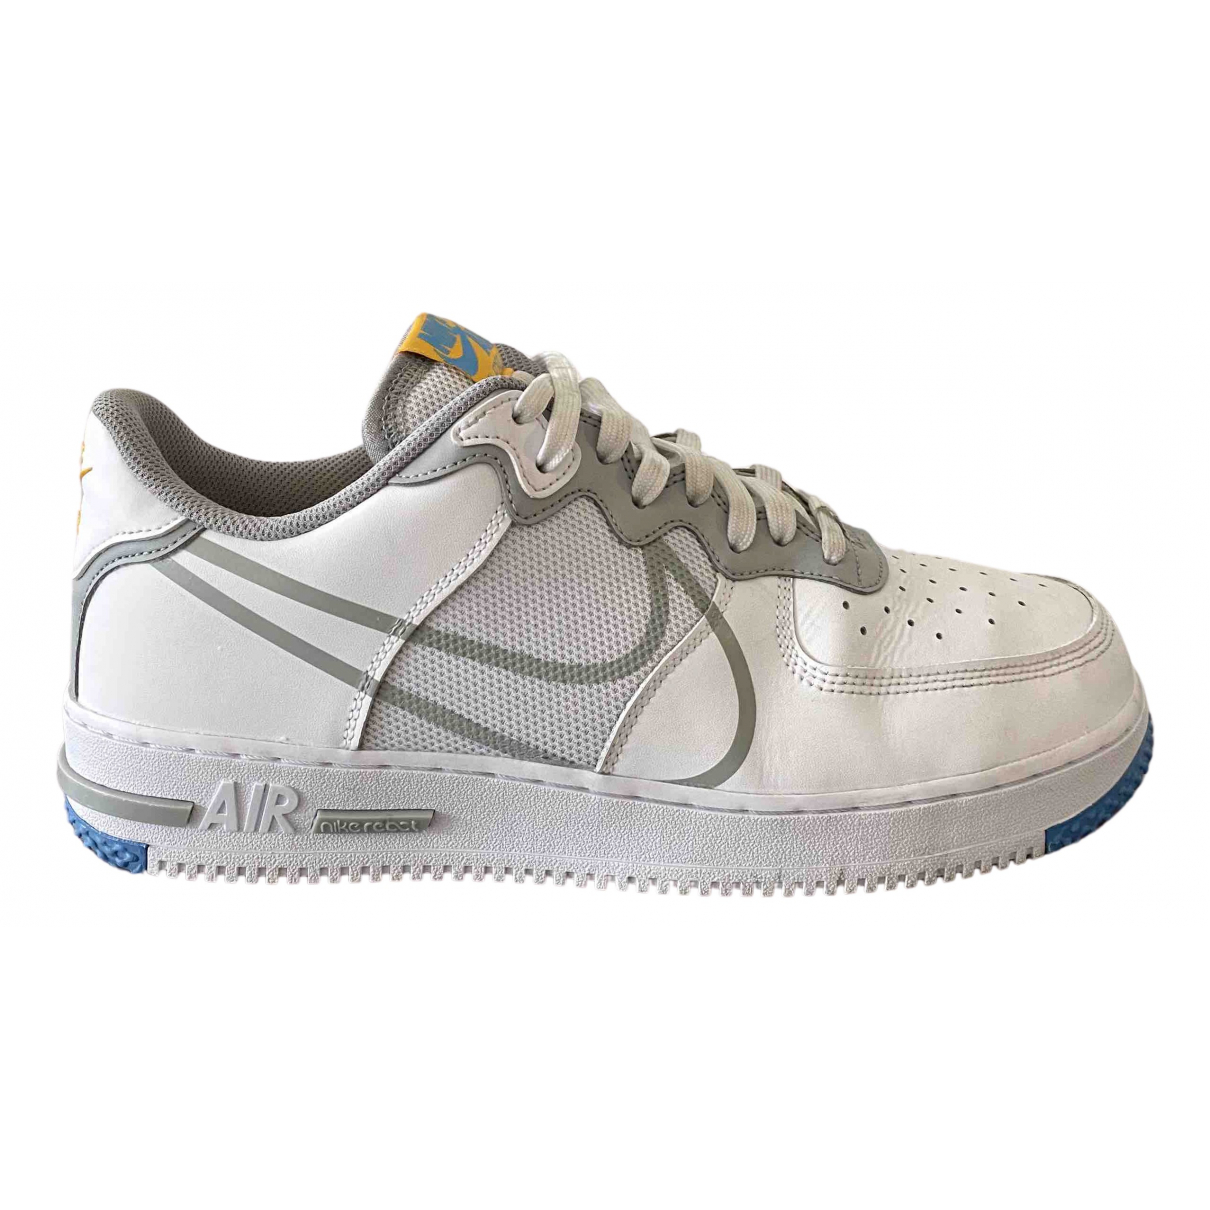 Nike Air Force 1 White Leather Trainers for Men 44.5 EU